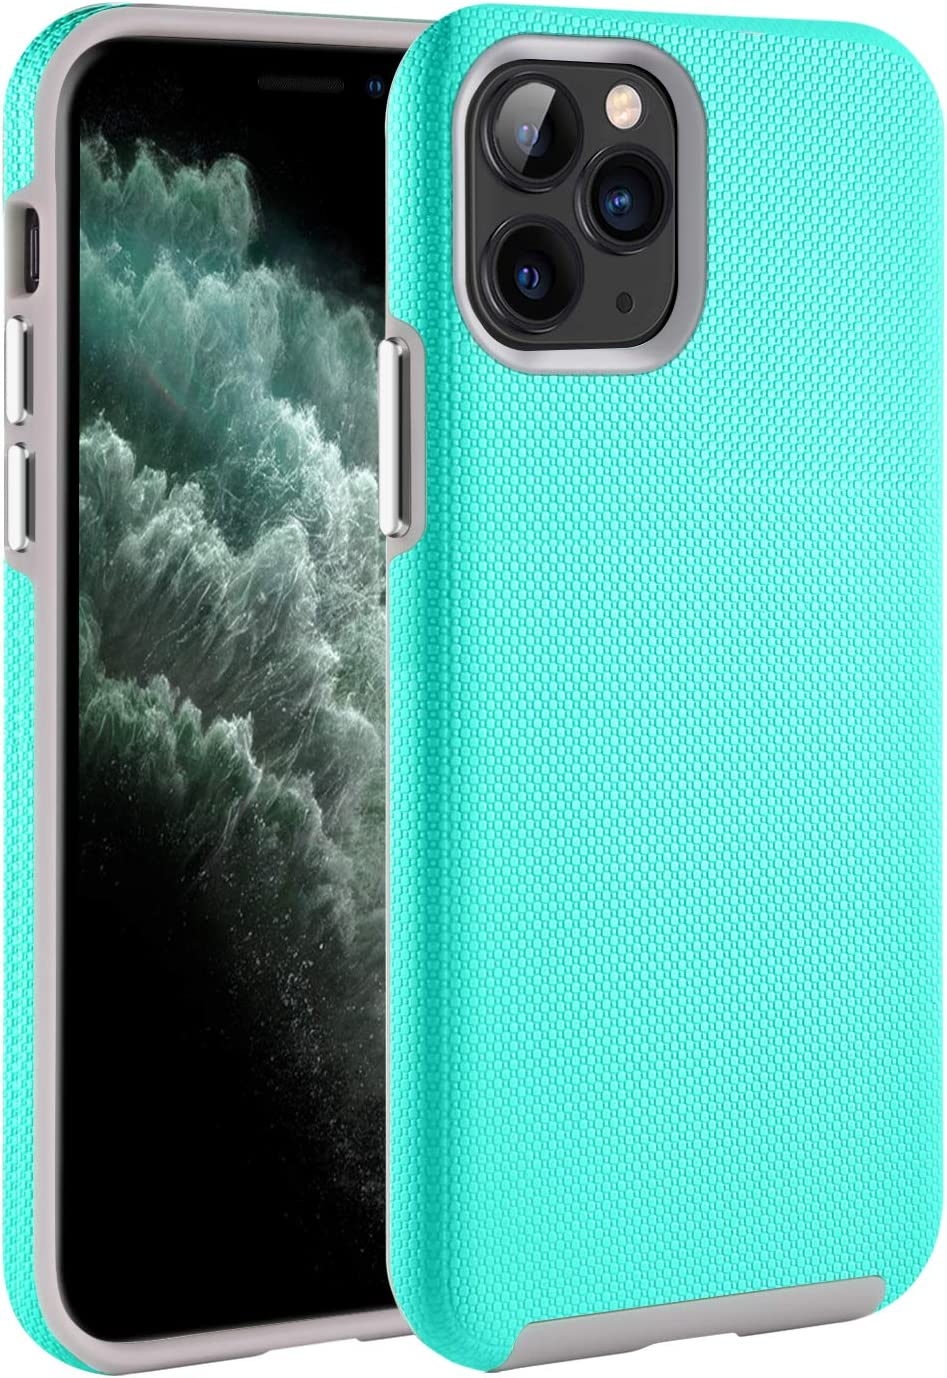 BENTOBEN Case for iPhone 11 Pro Max, Slim 2 in 1 Hybrid Soft TPU Bumper Hard PC Cover Shockproof Anti-Scratch Rugged Impact Resistant Protective Phone Cover for iPhone 11 Pro Max 6.5'', Mint Green